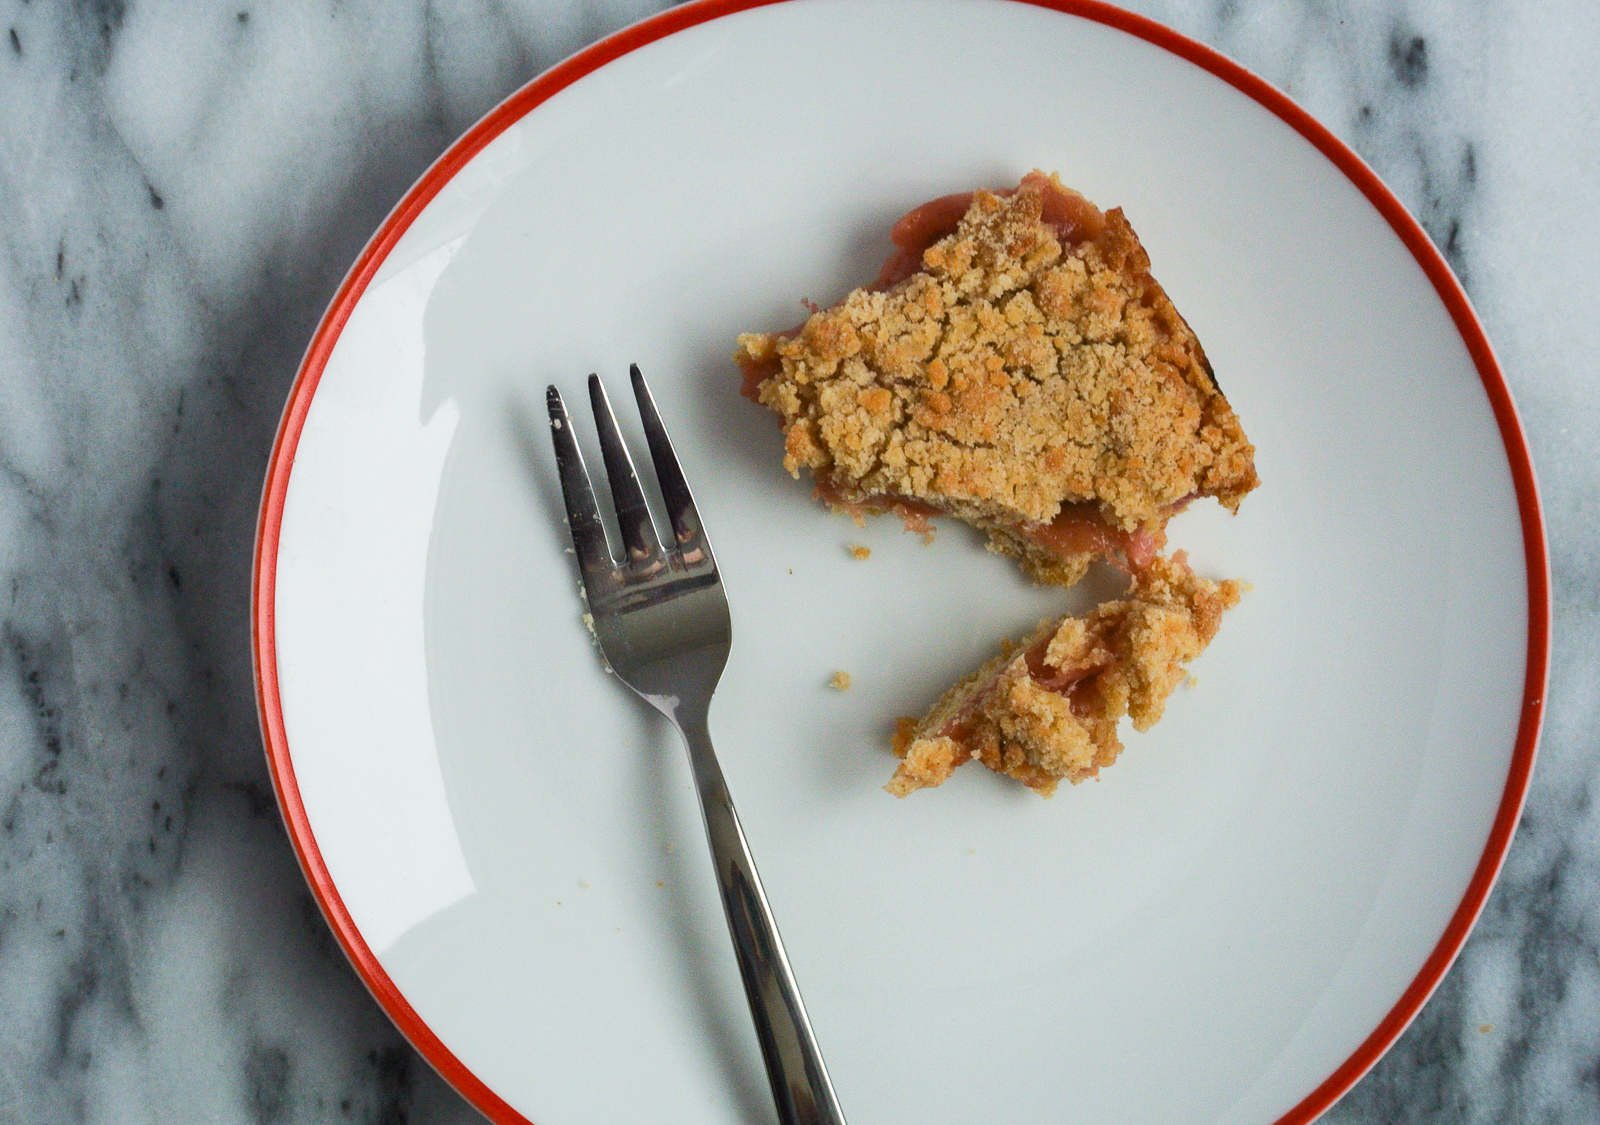 rhubarb crumble bar on plate with dessert fork